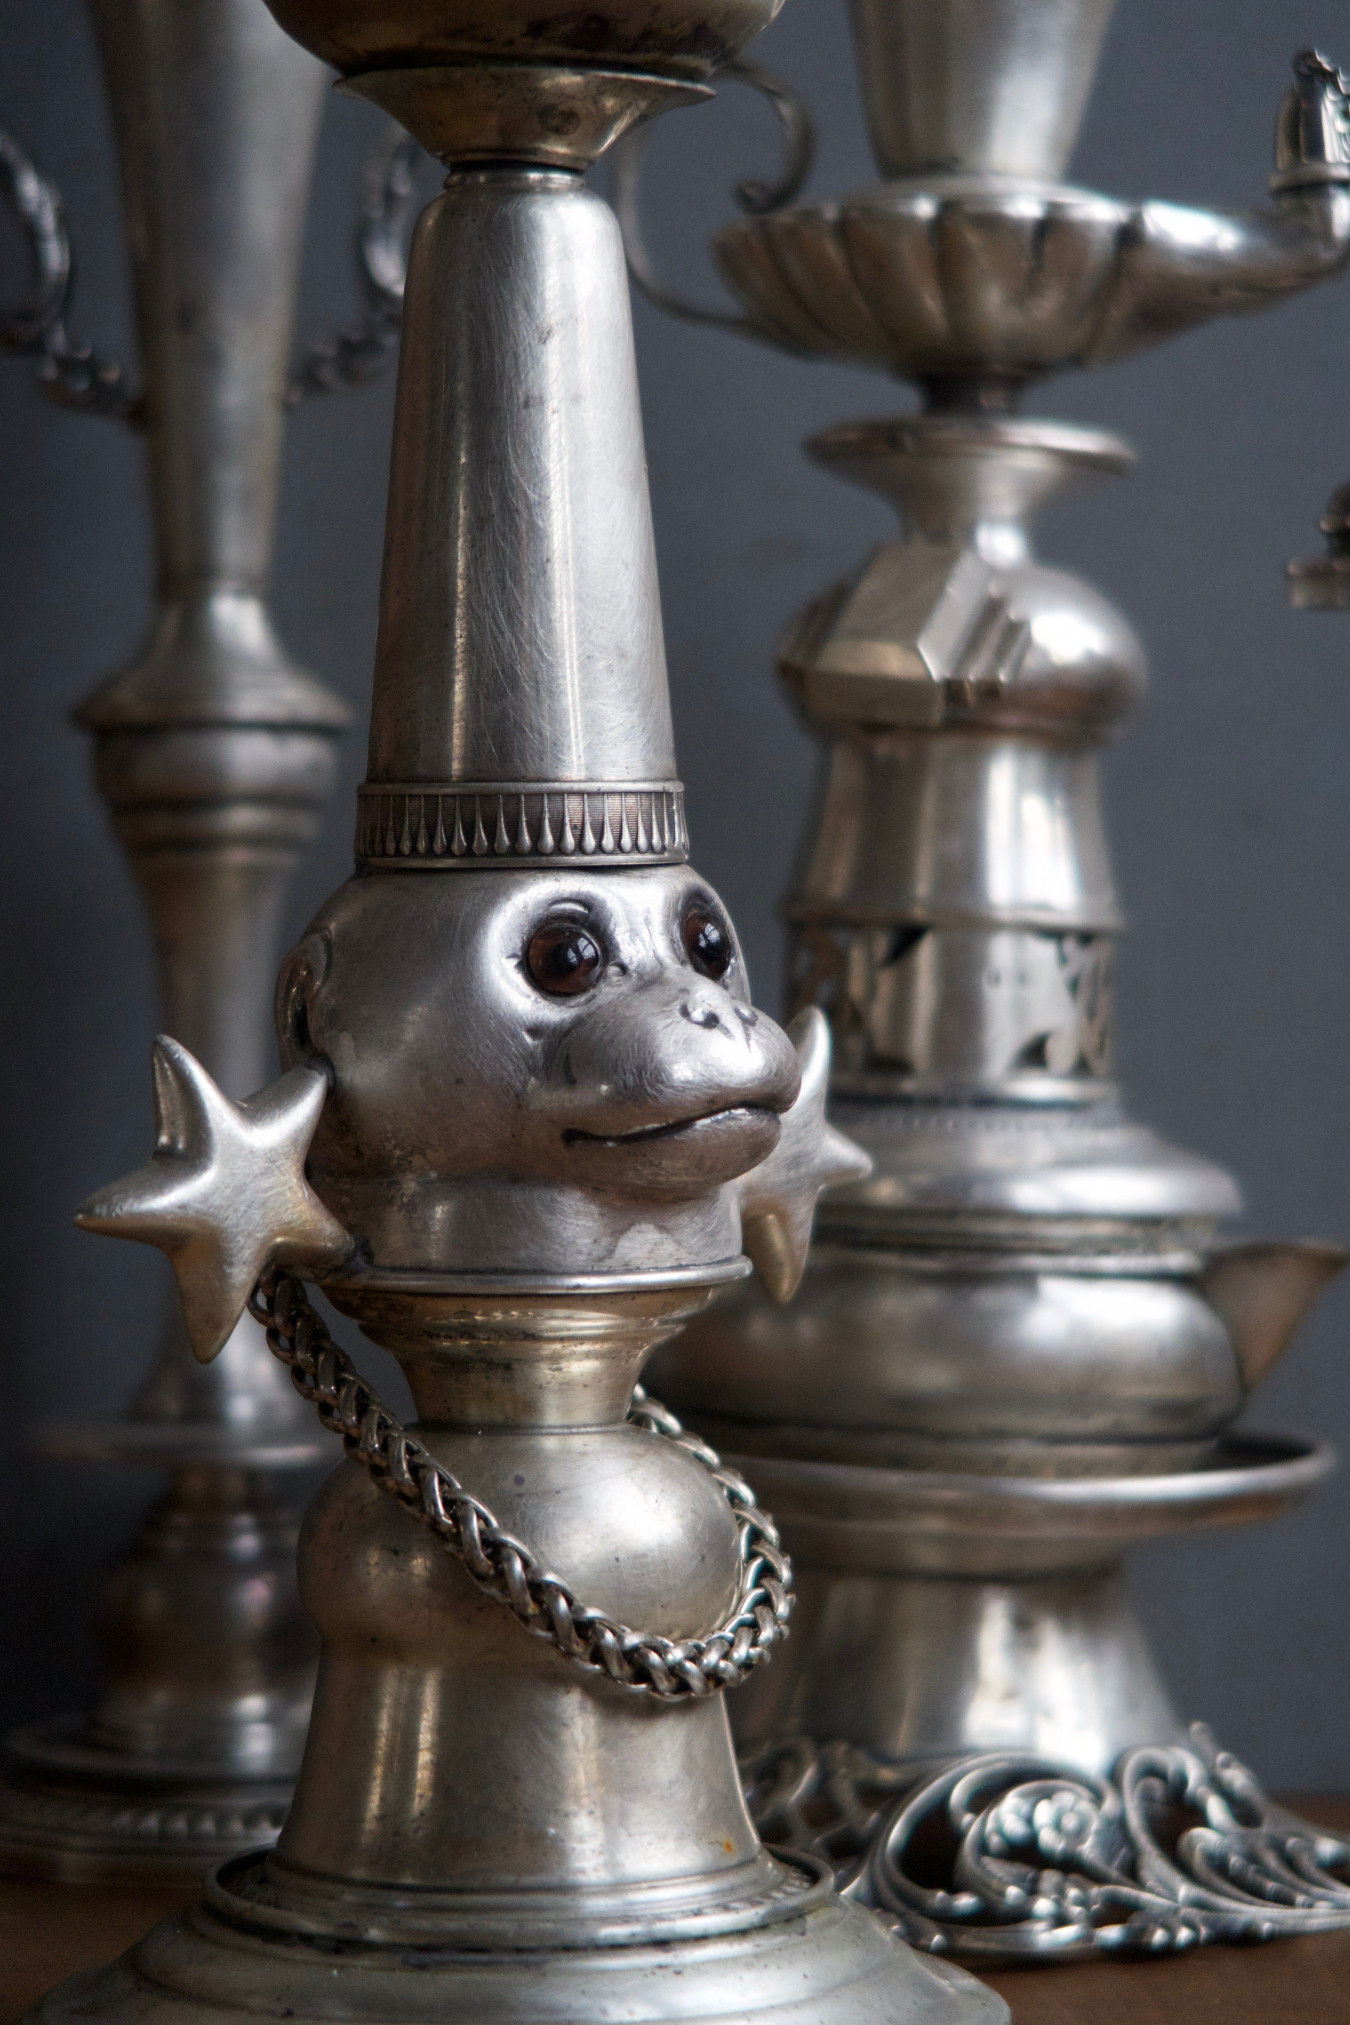 Detailed image of candlesticks made up of Tiffany earrings, a monkey bottle stopper and other pieces of silverware stacked up and soldered together to form tall towers.